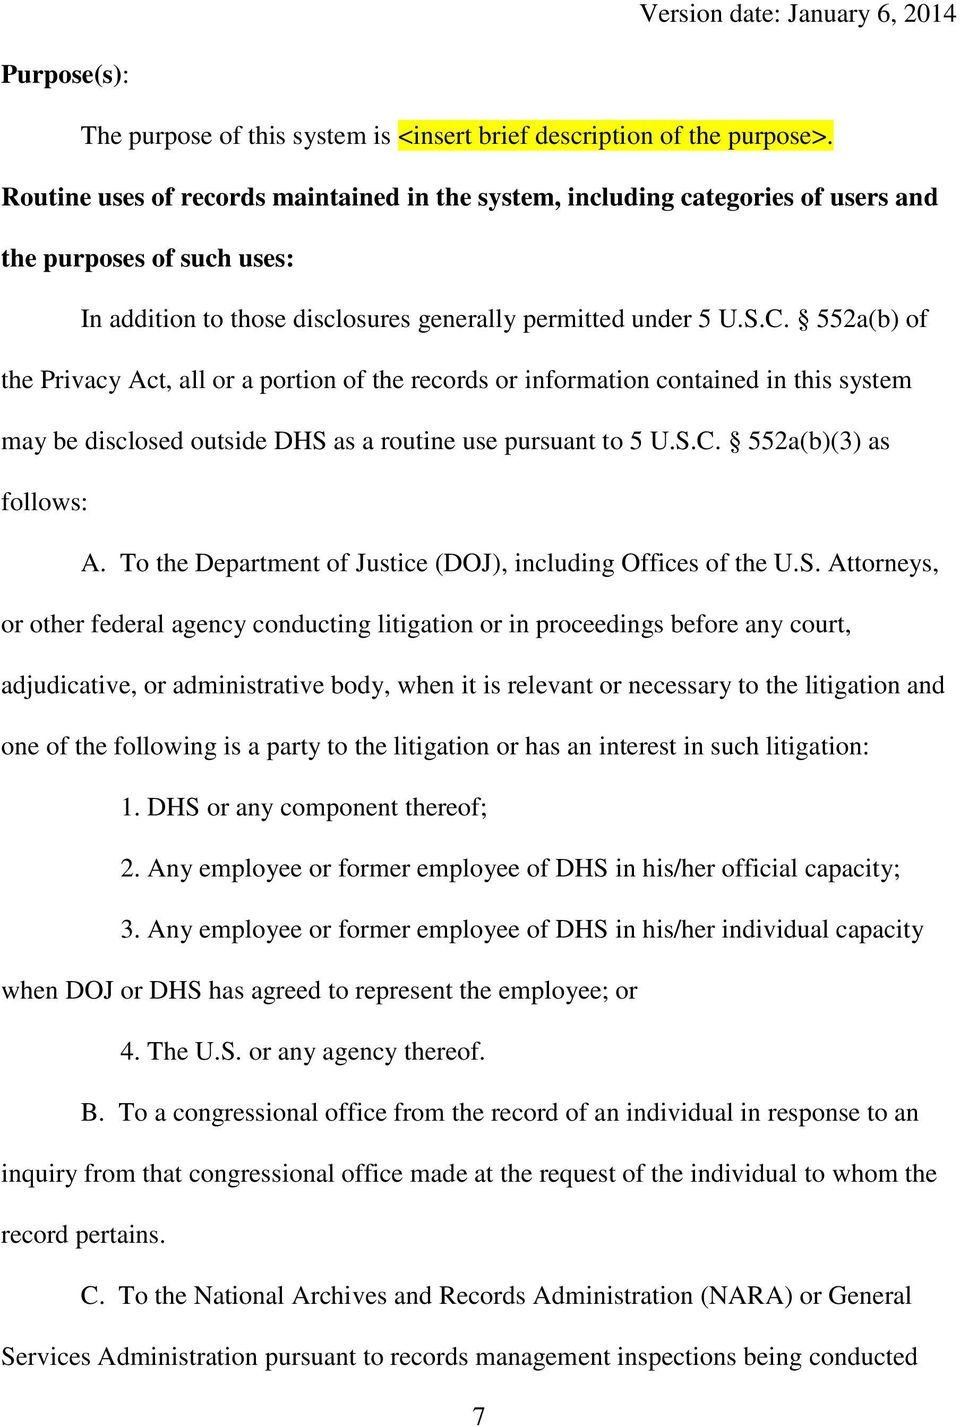 552a(b) of the Privacy Act, all or a portion of the records or information contained in this system may be disclosed outside DHS as a routine use pursuant to 5 U.S.C. 552a(b)(3) as follows: A.